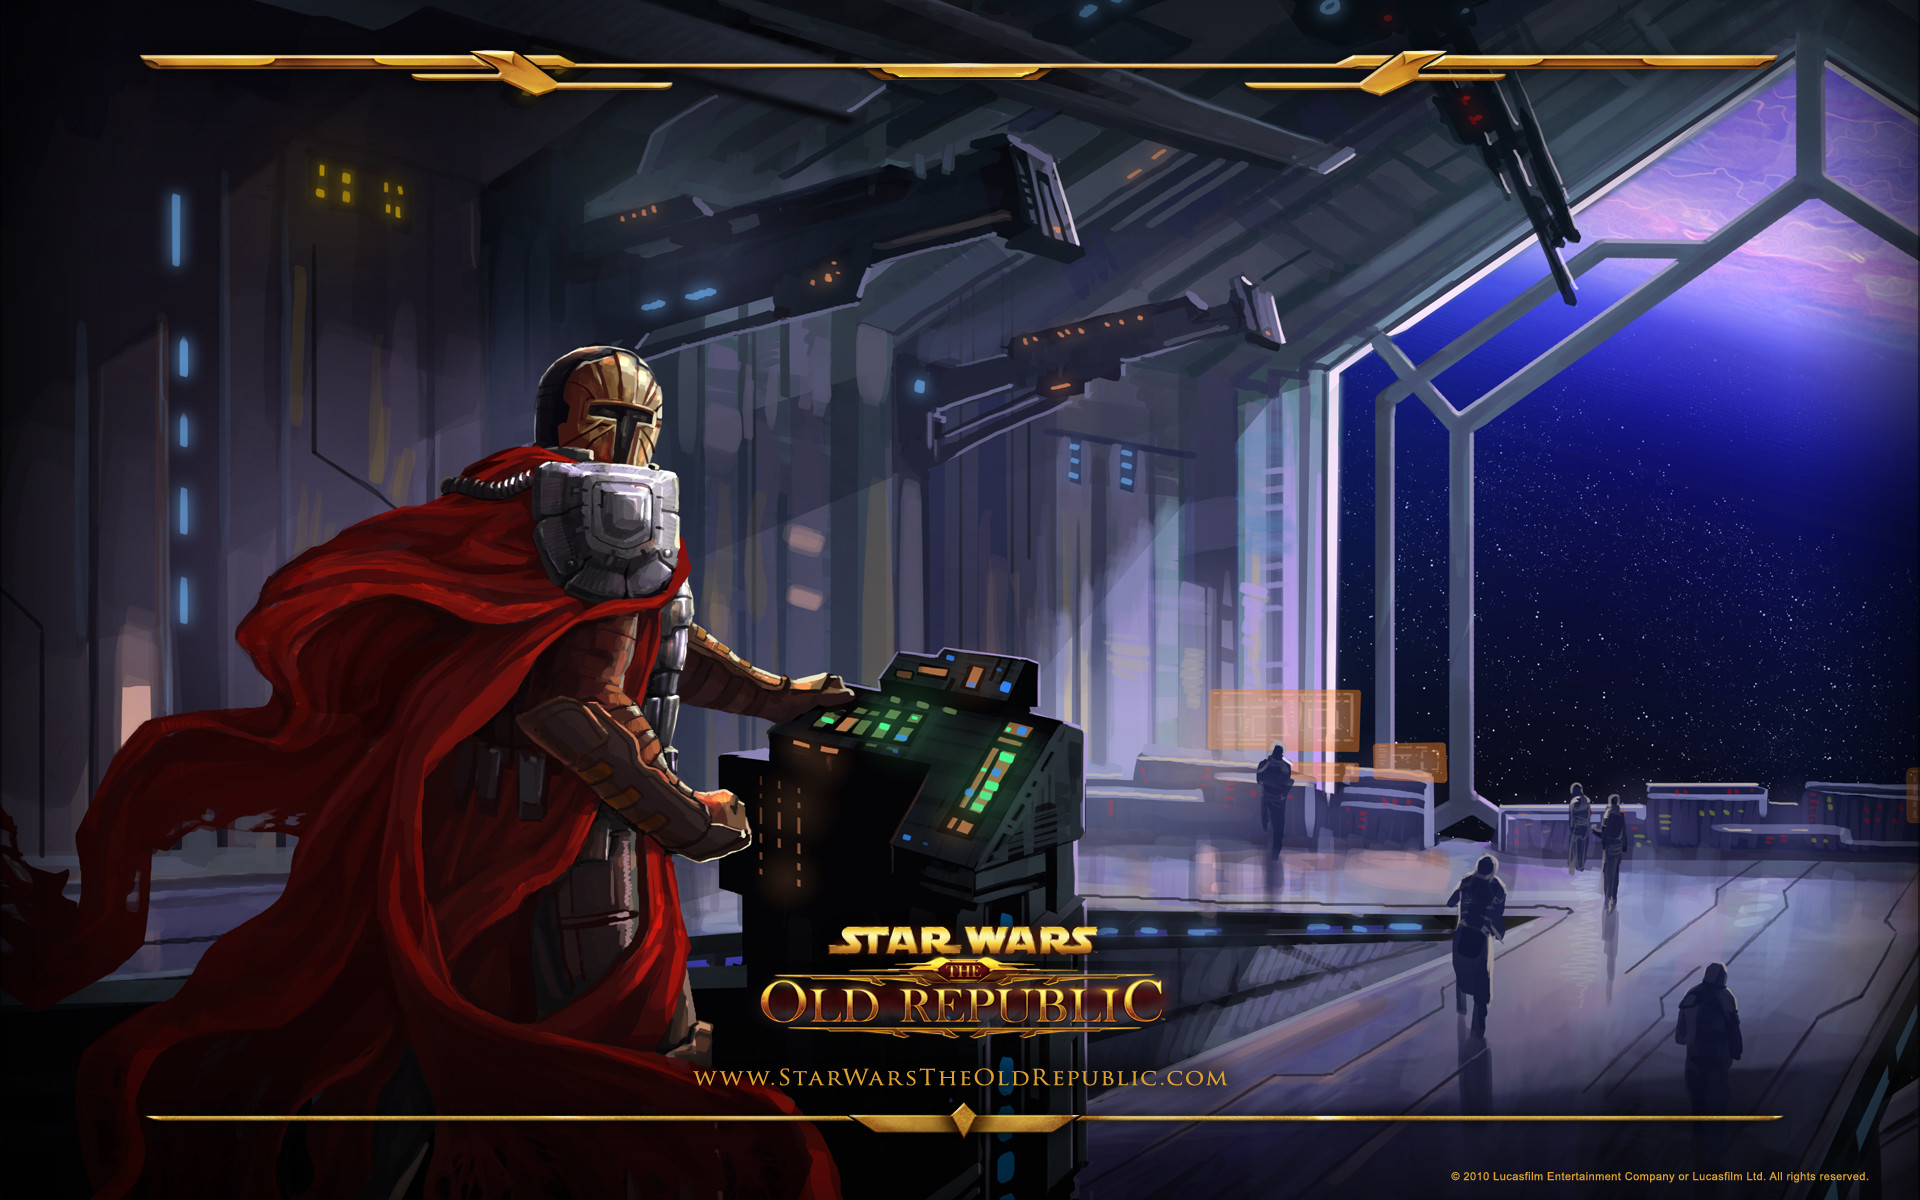 star wars old republic wallpaper (74+ images)